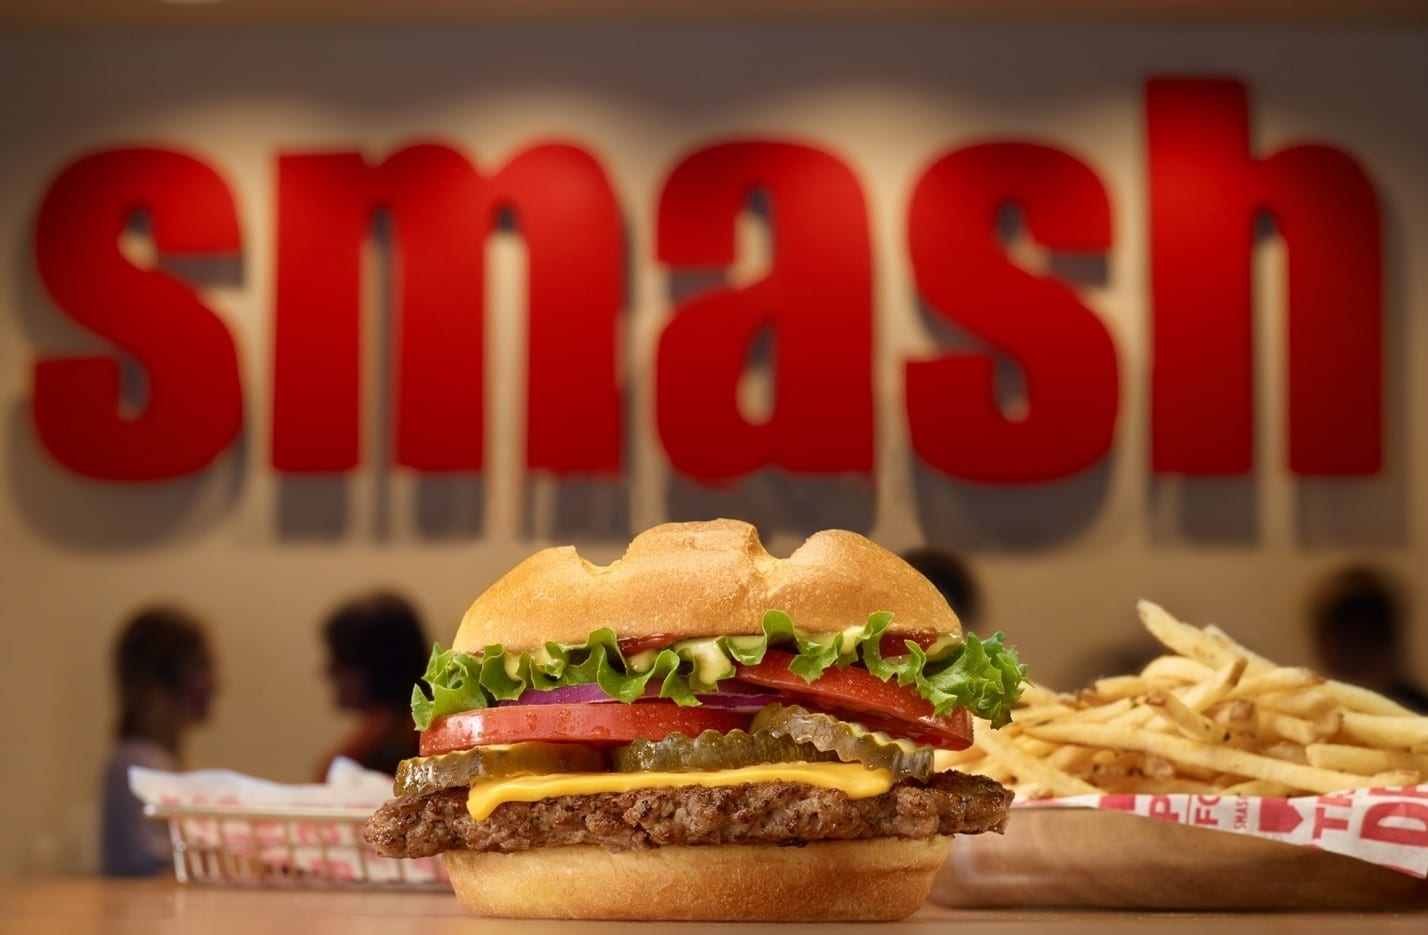 Smashburger, Buy One Burger, Get One for $1!